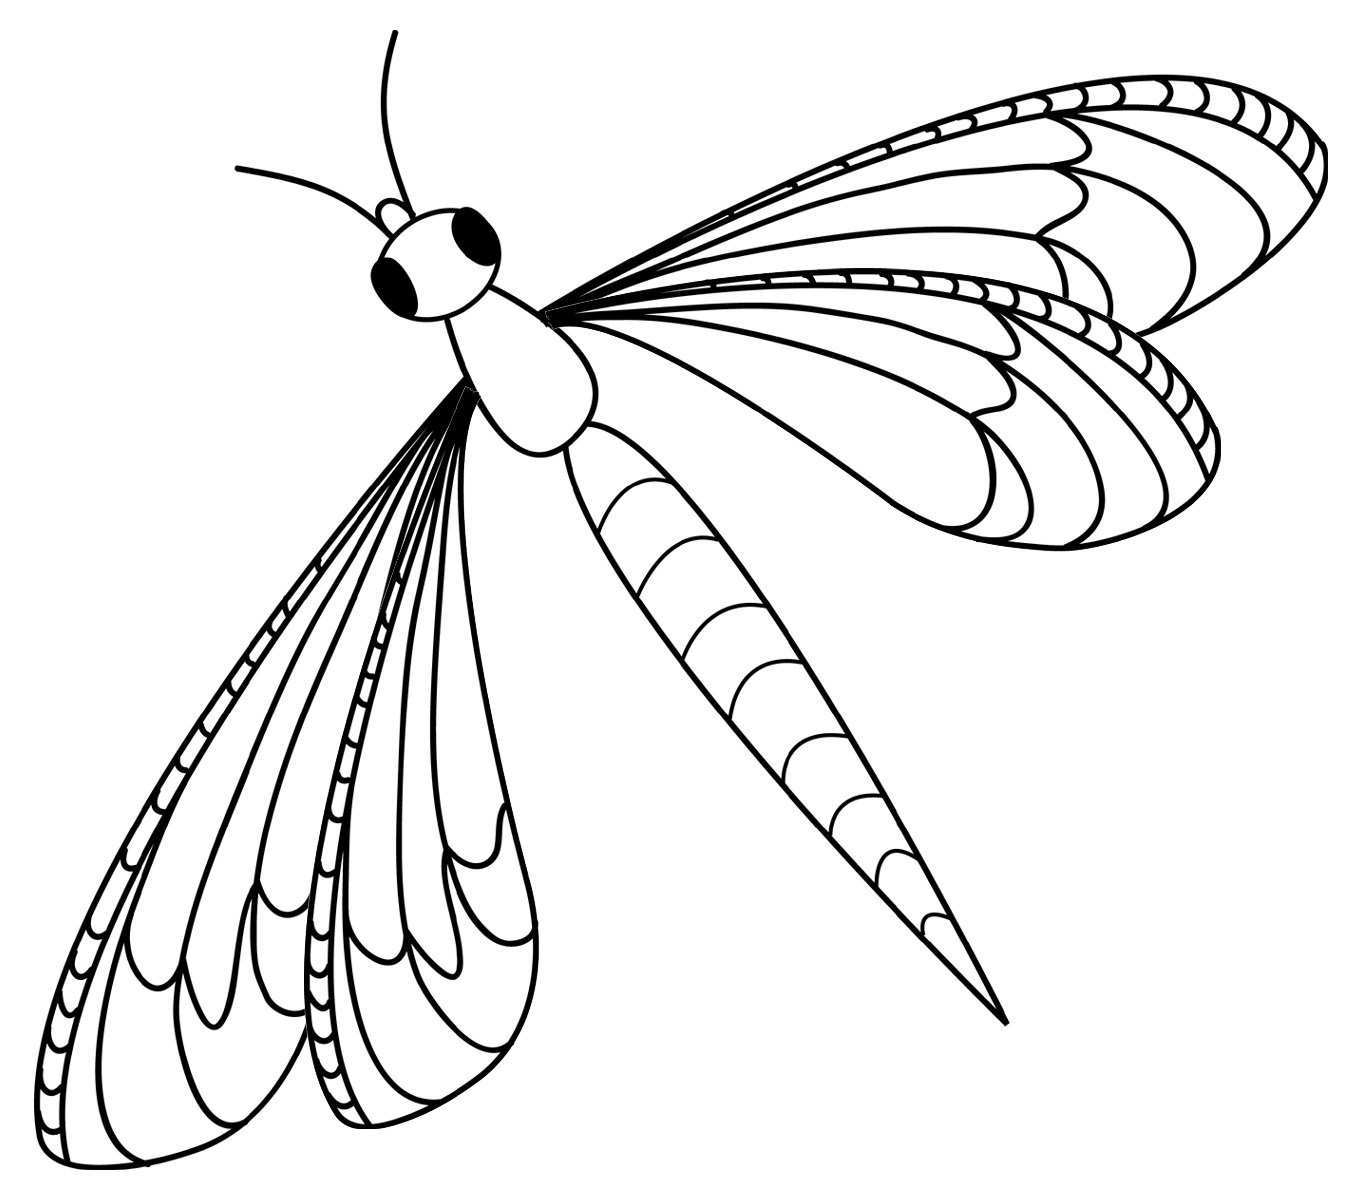 Clip Art  Insects  Dragonfly Grayscale   Abcteach